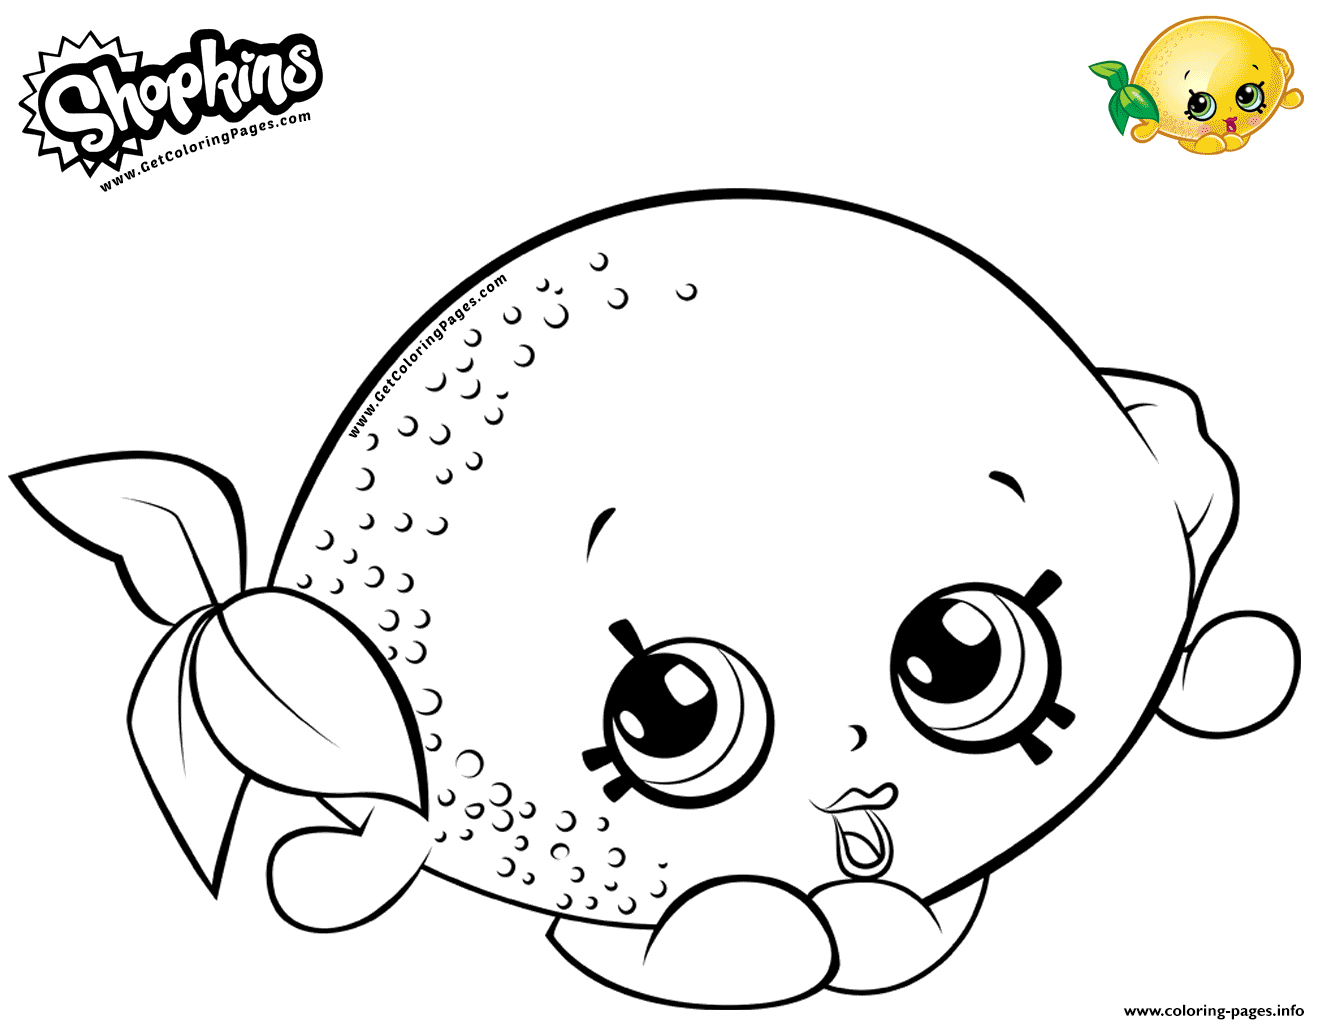 Print Cartoon Lemon Toy Coloring Pages Free Kids Coloring Pages Coloring Pages Cute Coloring Pages